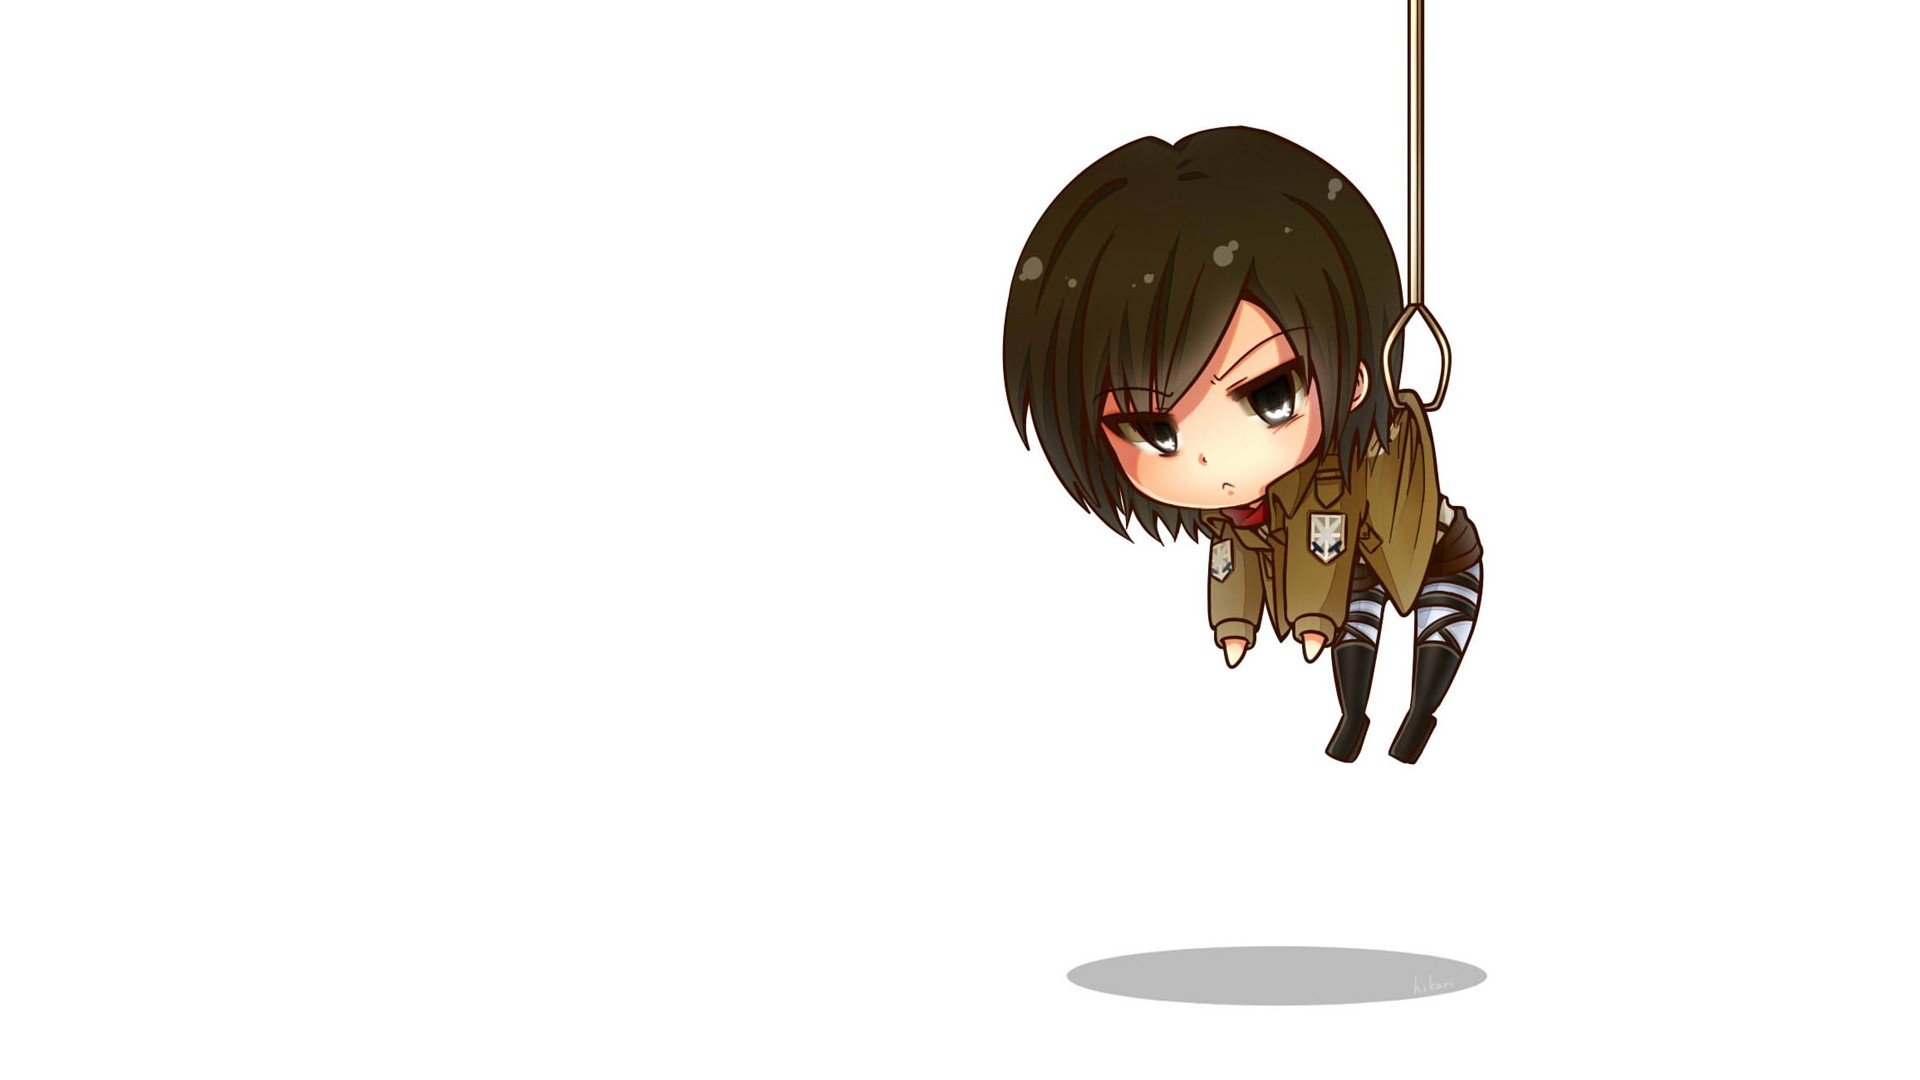 764 Mikasa Ackerman Hd Wallpapers Background Images Wallpaper Abyss Page 2